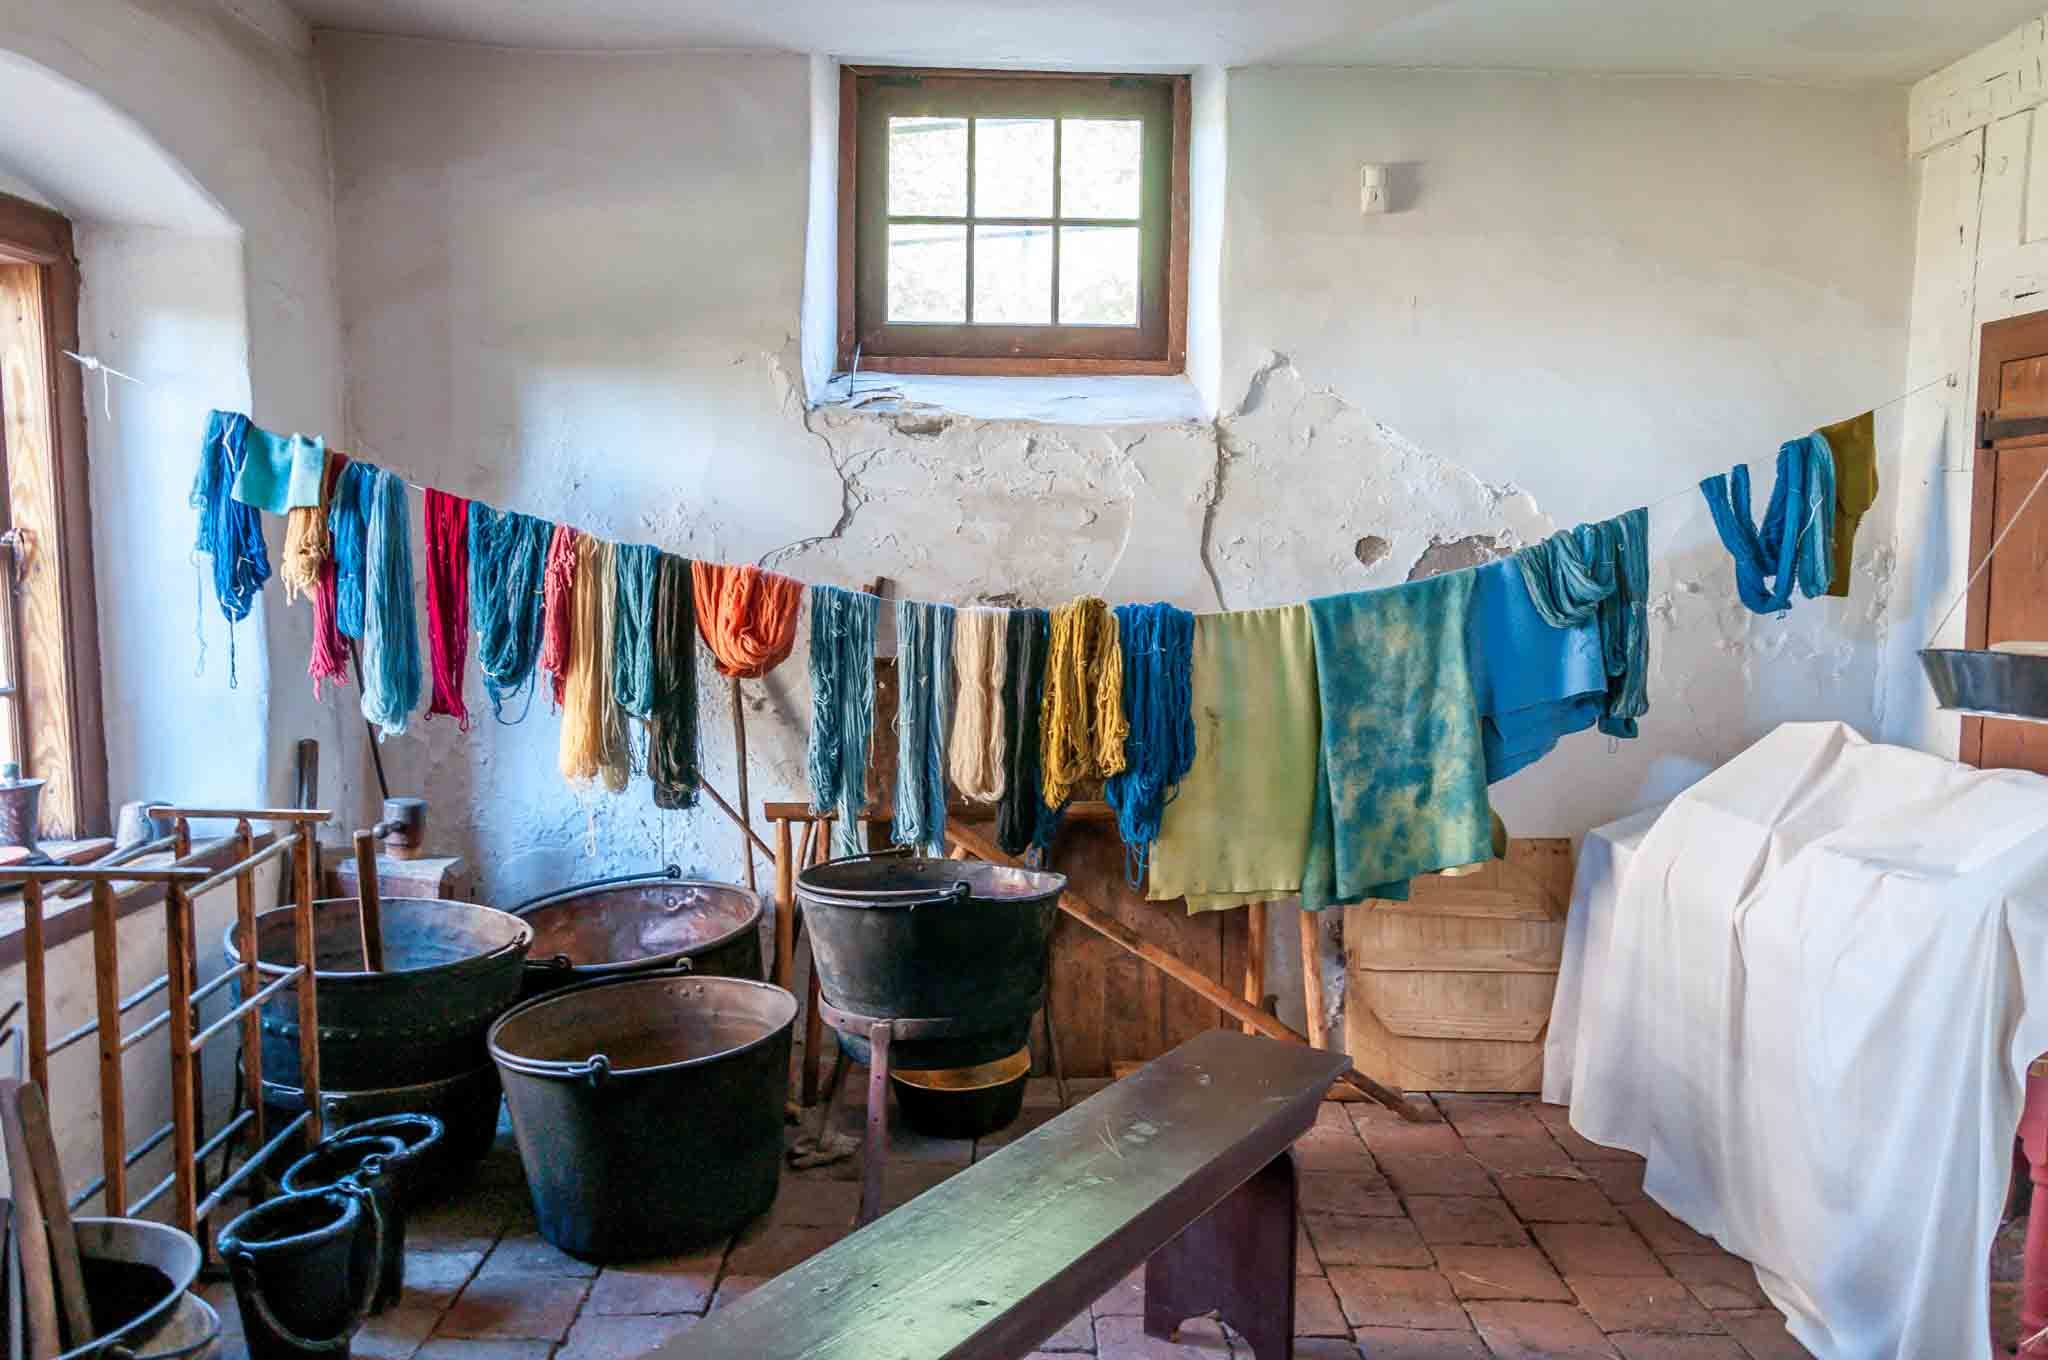 Yarn and fabric being dyed